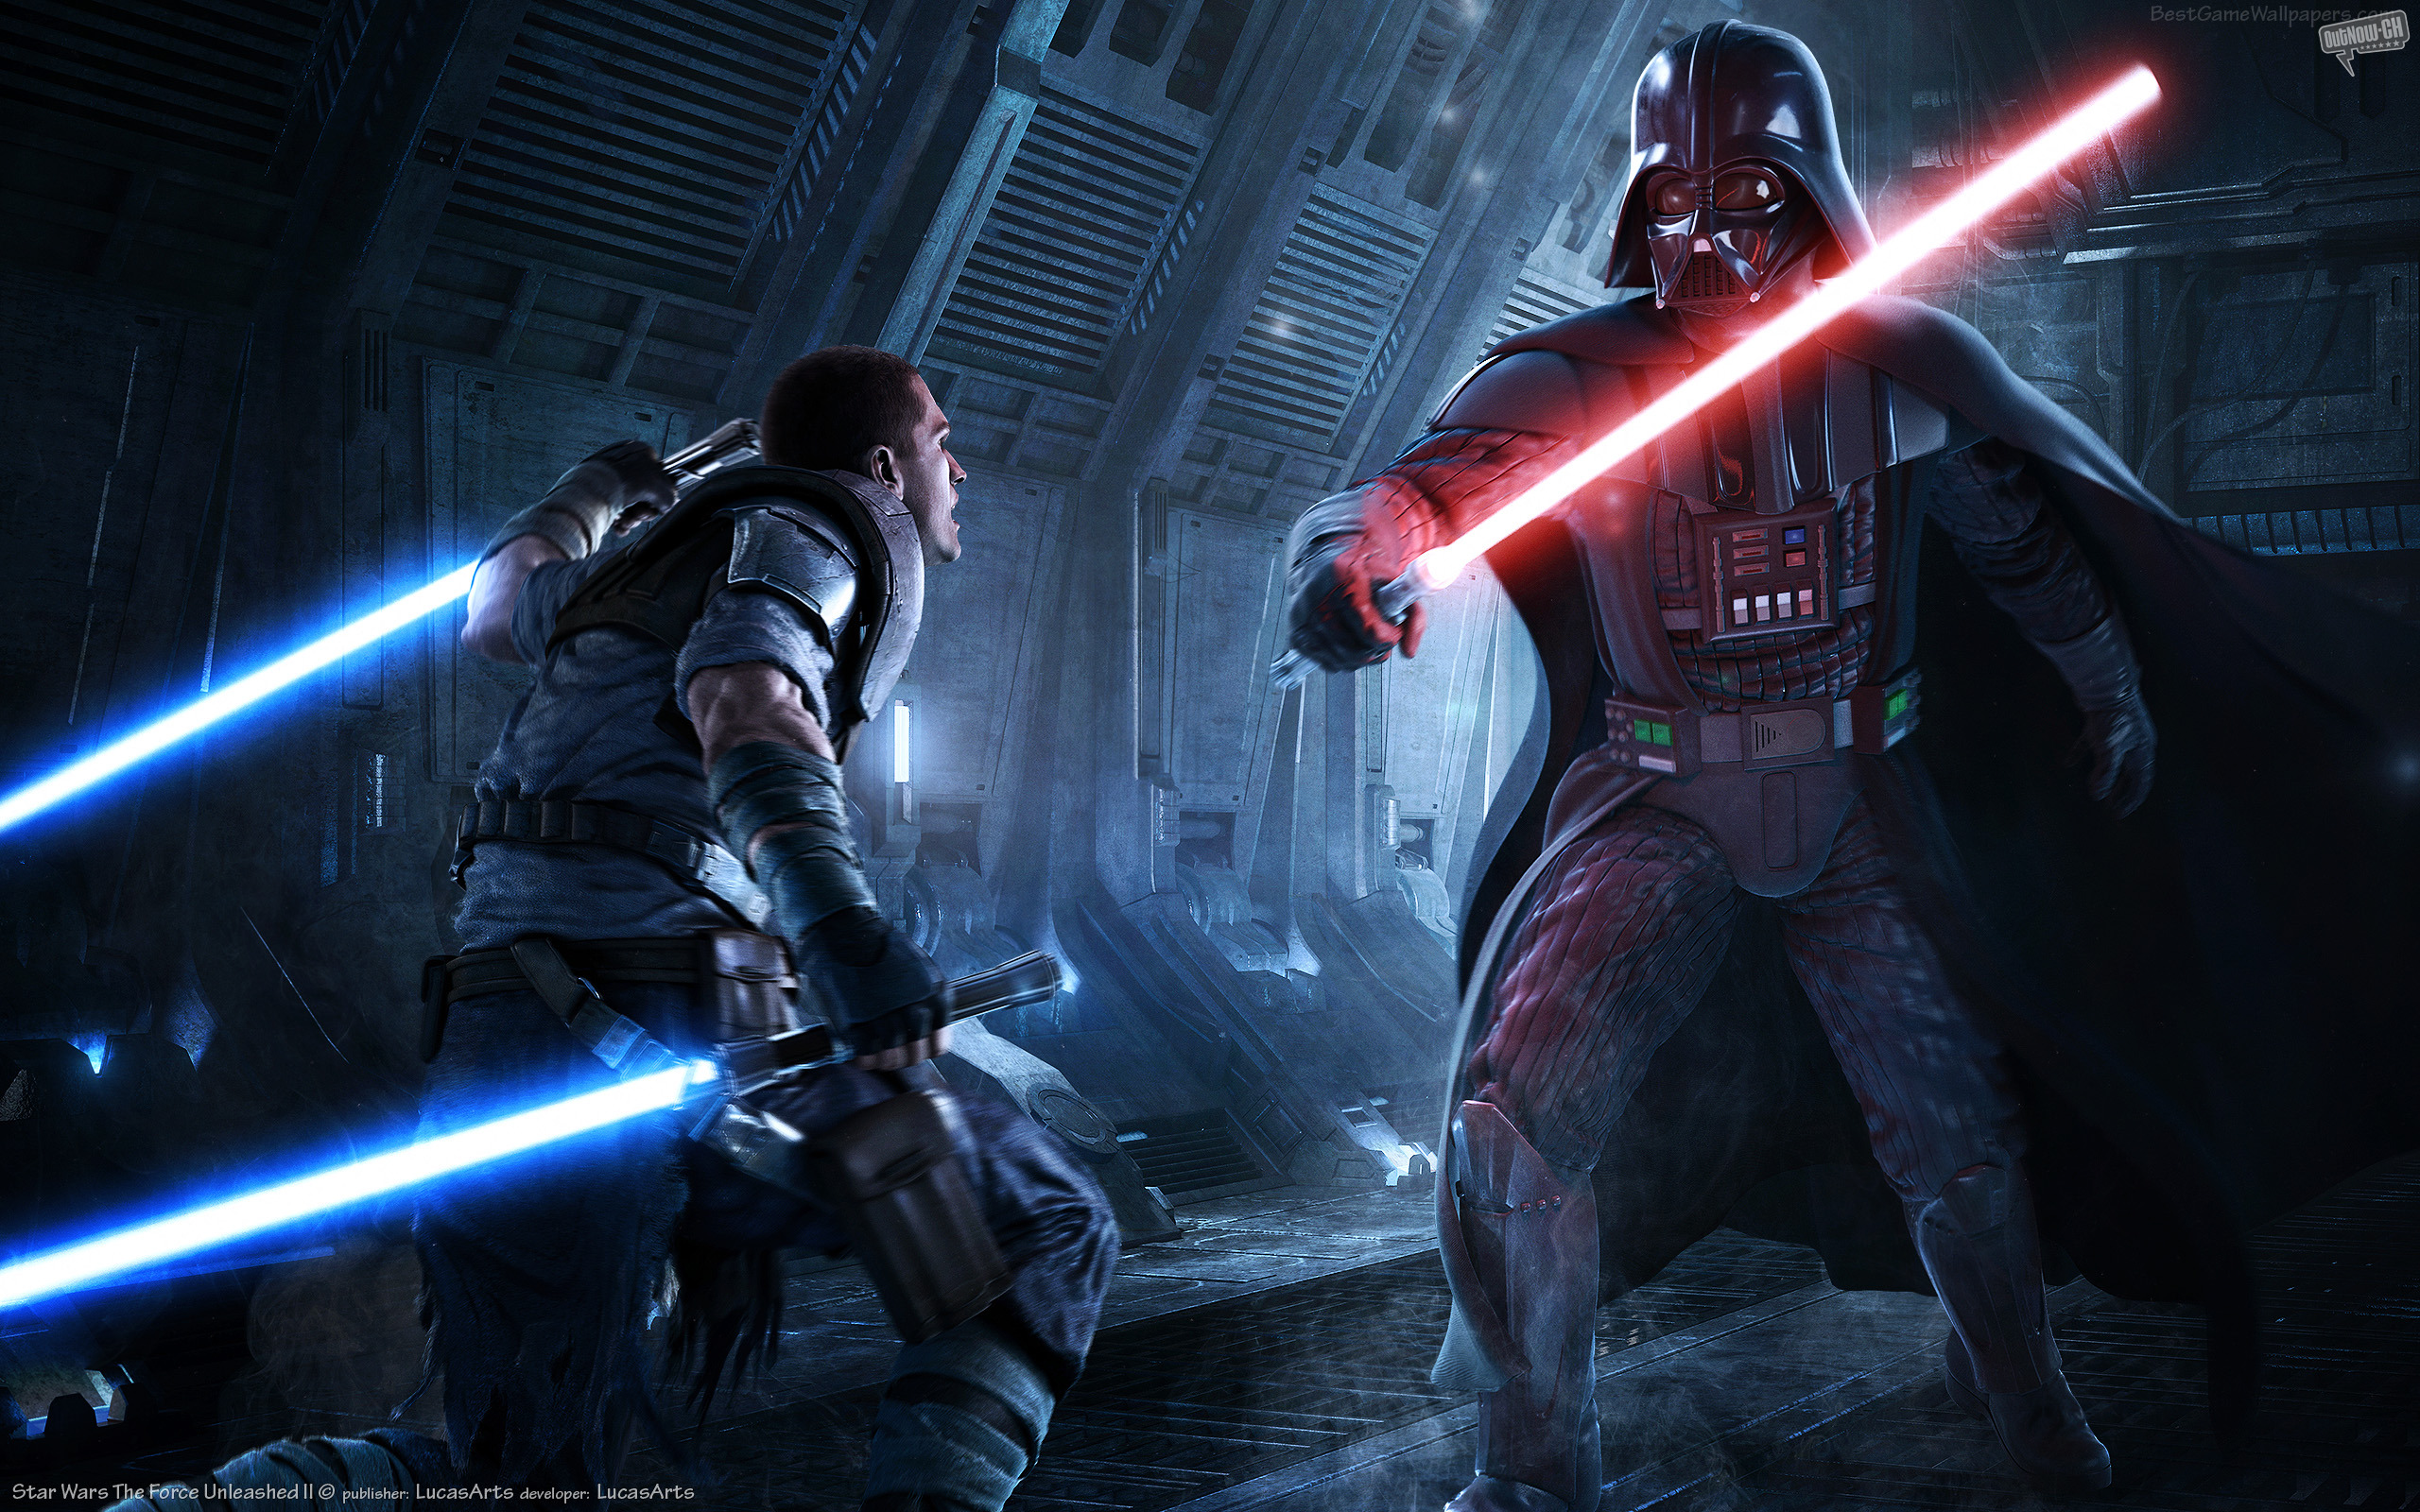 2560x1440 Star Wars: Force Unleashed 2 YouTube Channel Cover